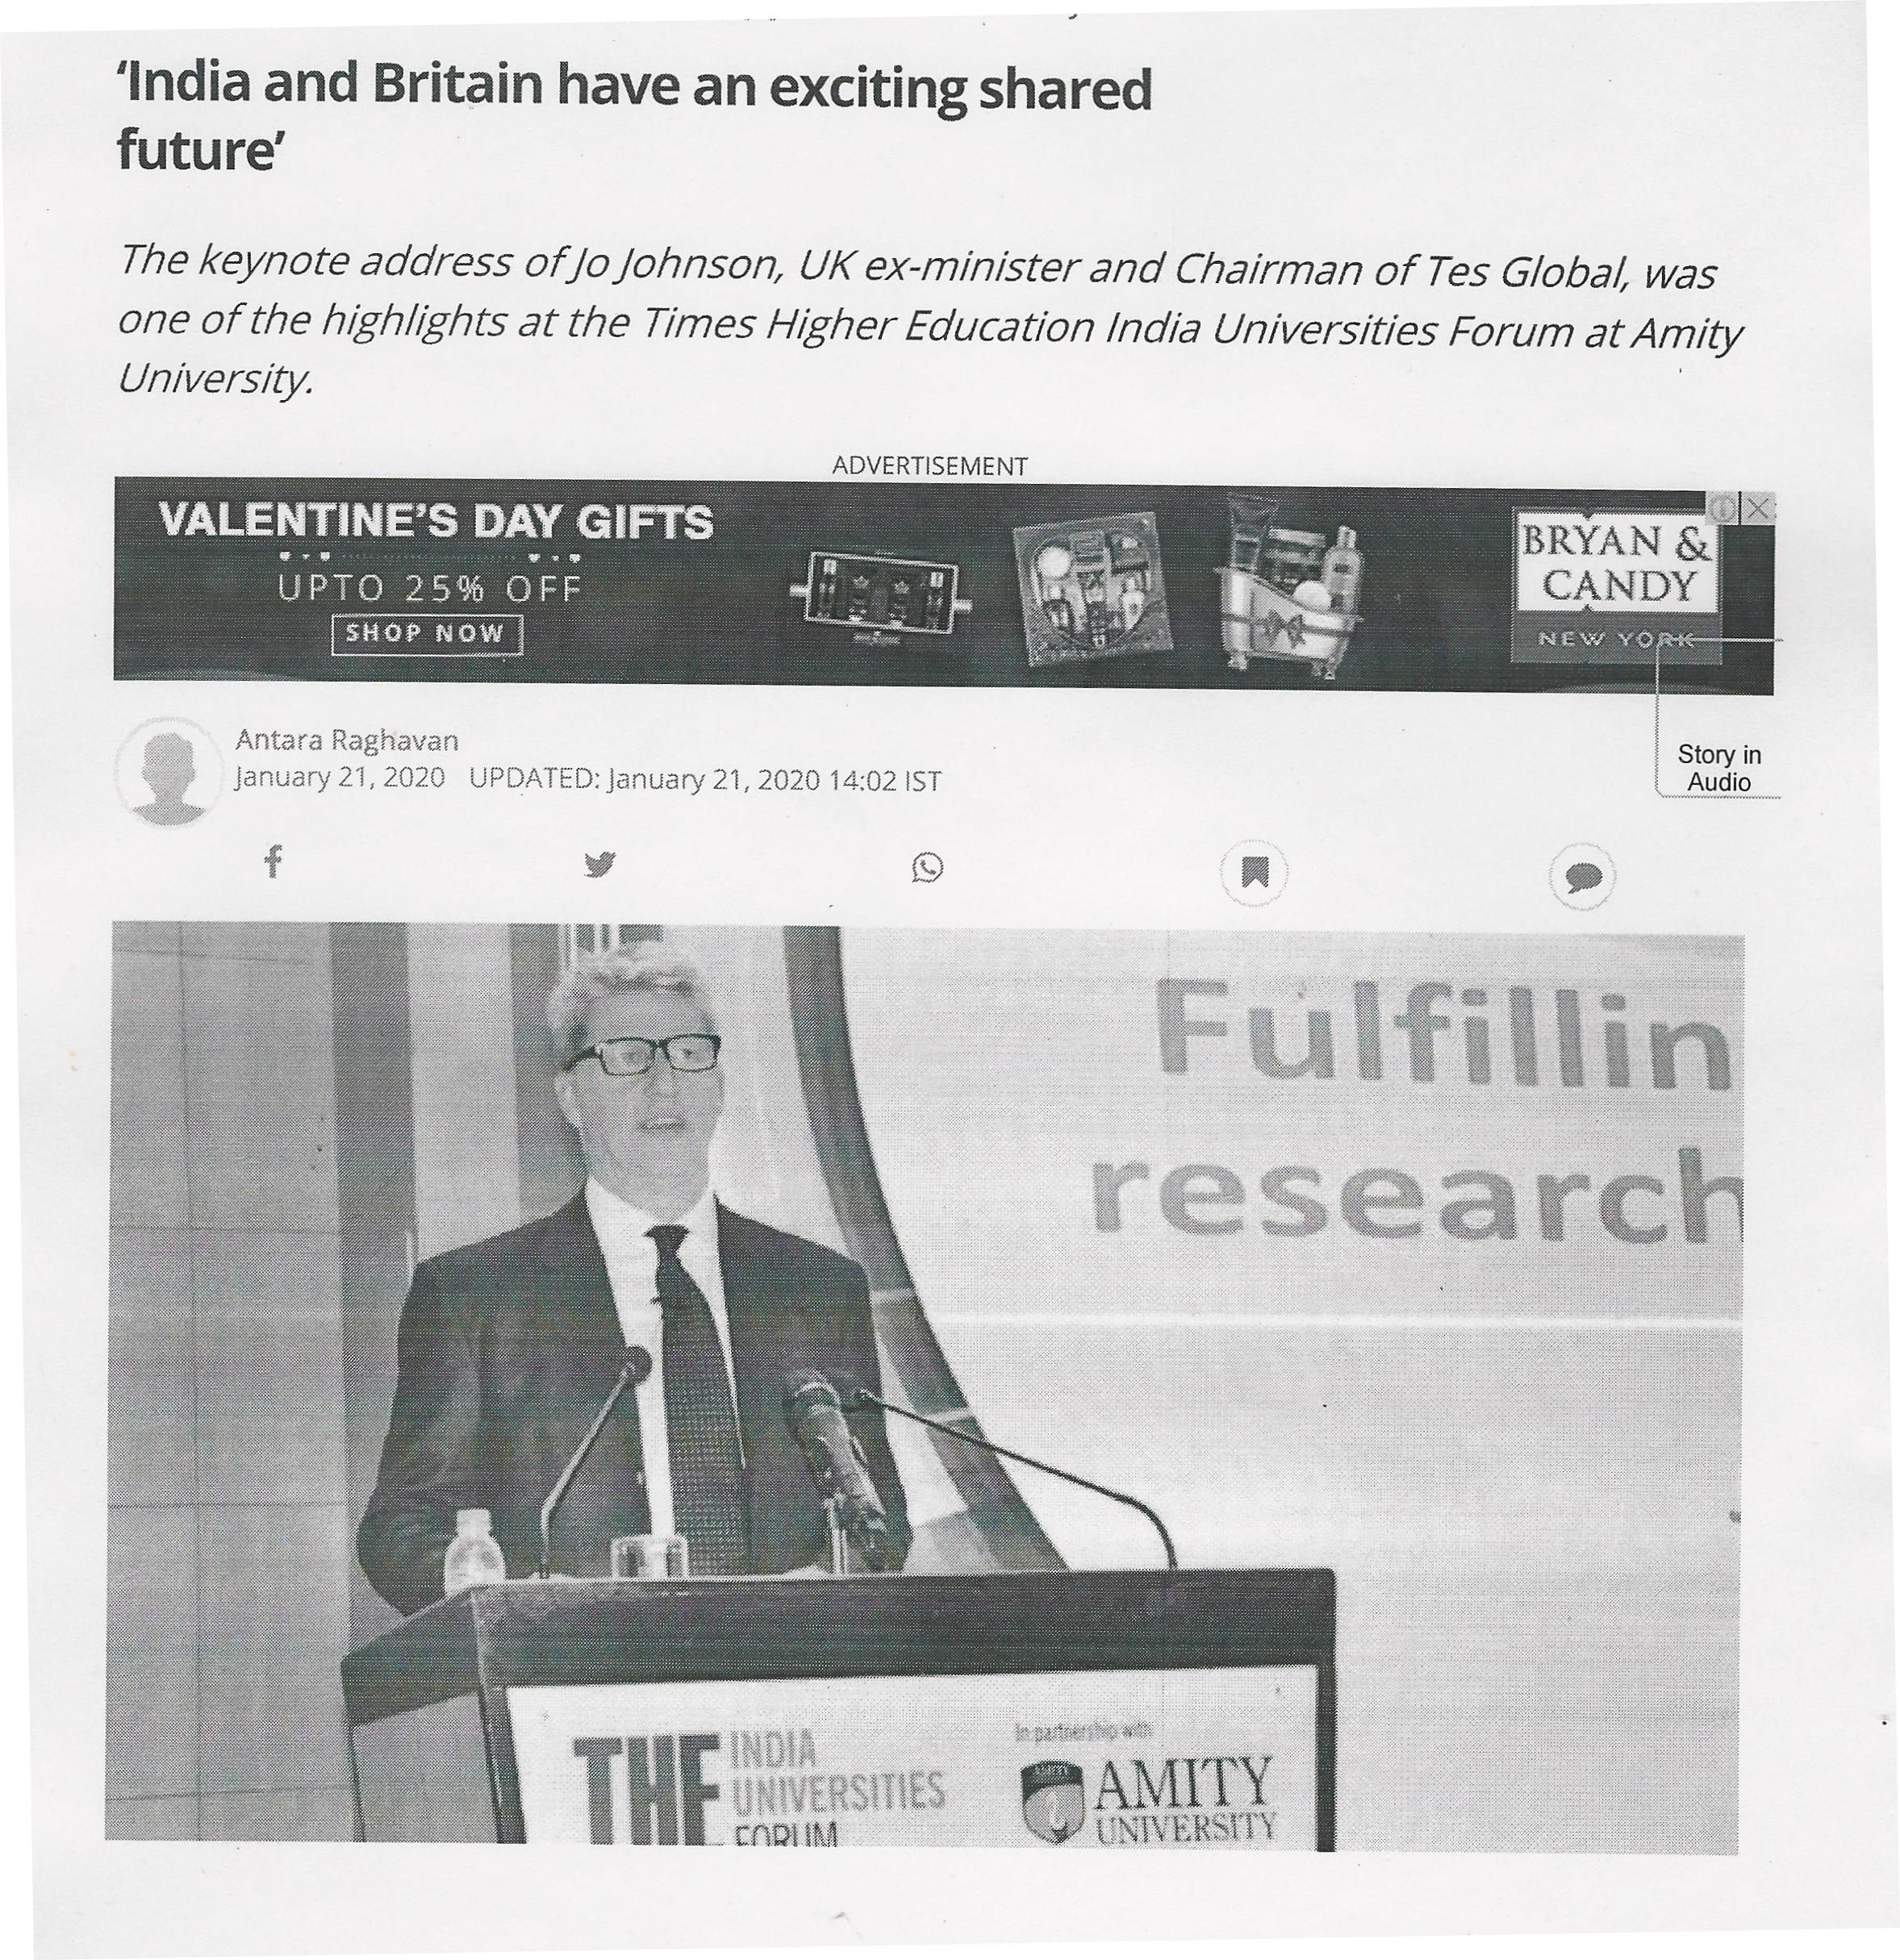 Times Higher Education – (THE) Indian Universities Forum held at Amity University - Amity Events